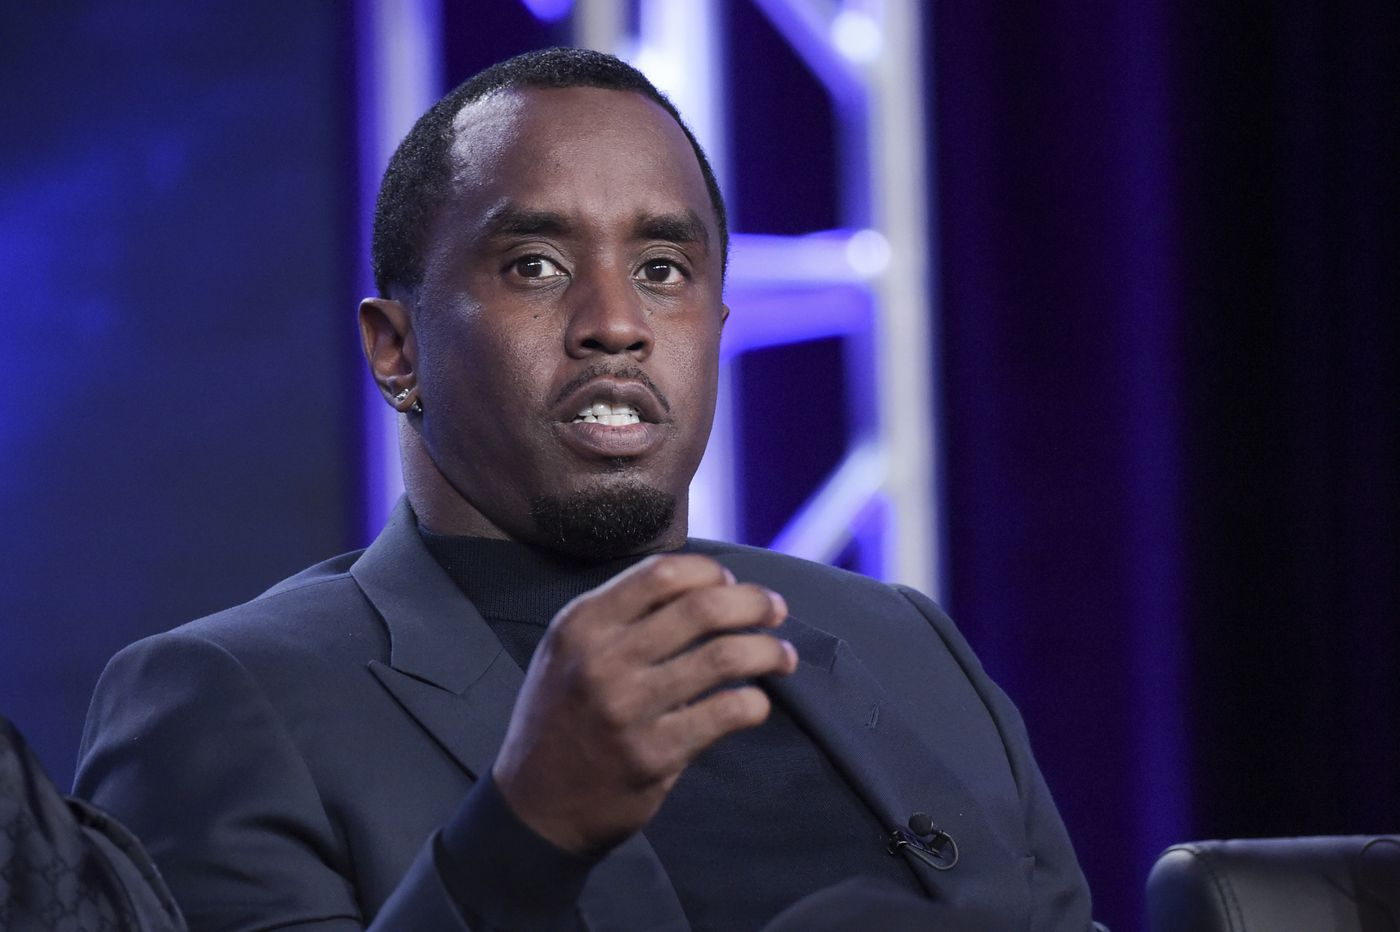 Diddy Drops Pics From His Birthday Celebration – Check Them Out Here